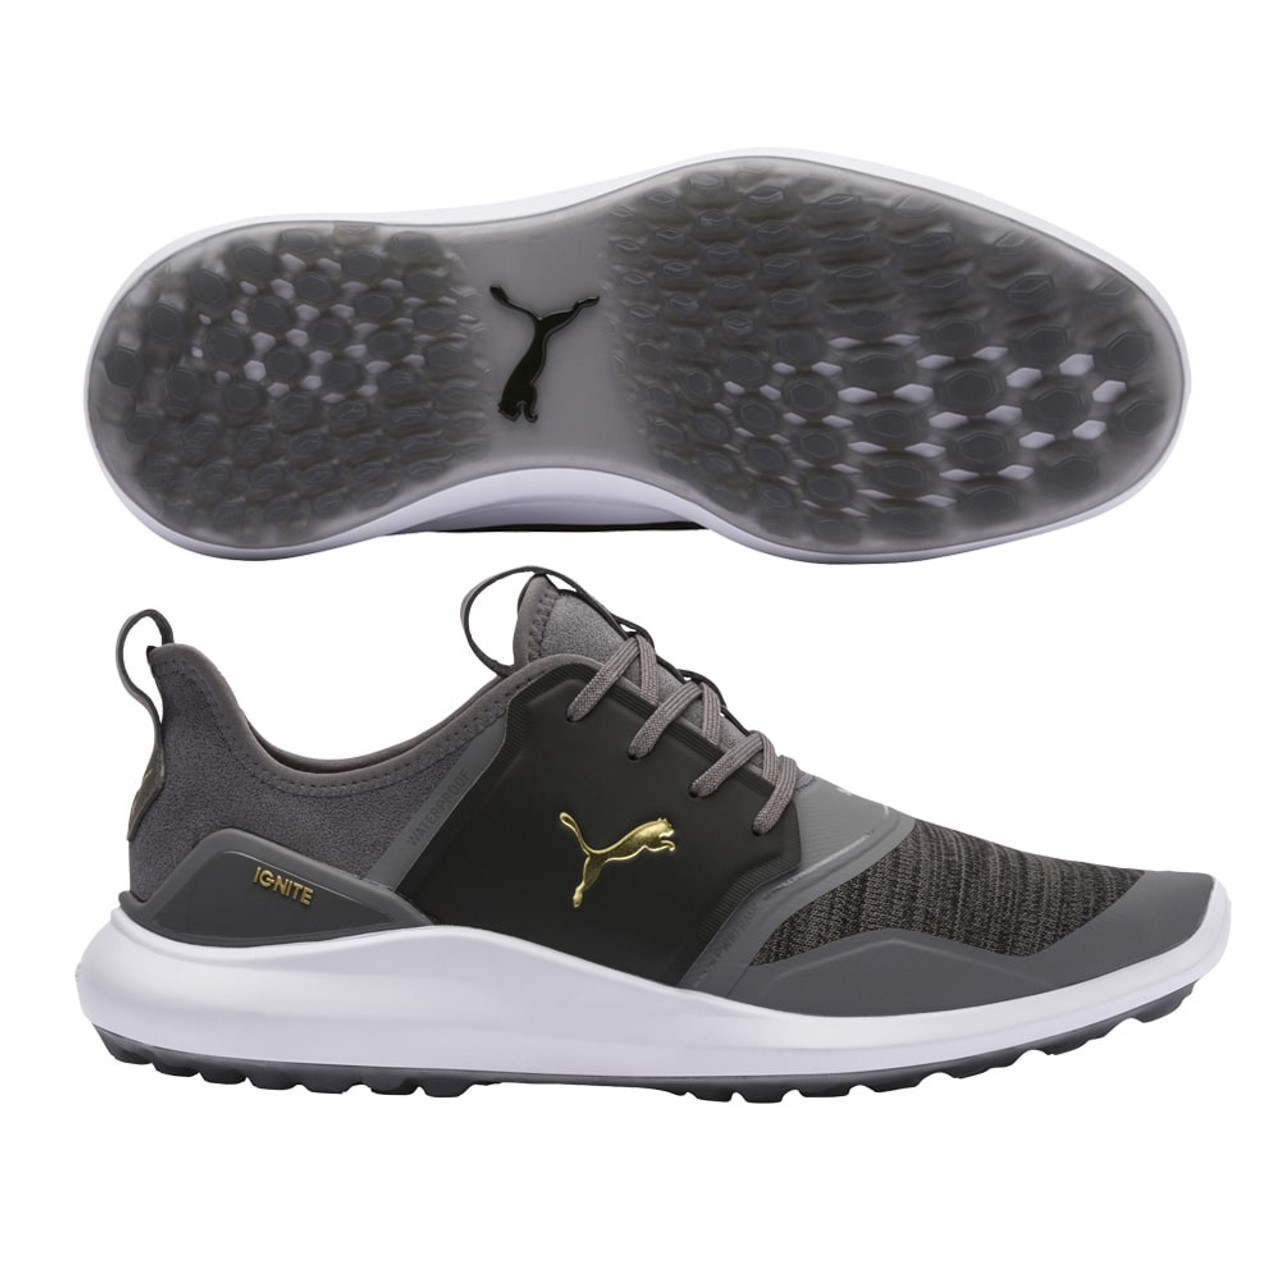 Puma IGNITE NXT Lace Golf Shoes - Quiet Shade / Puma Team Gold / Puma Black